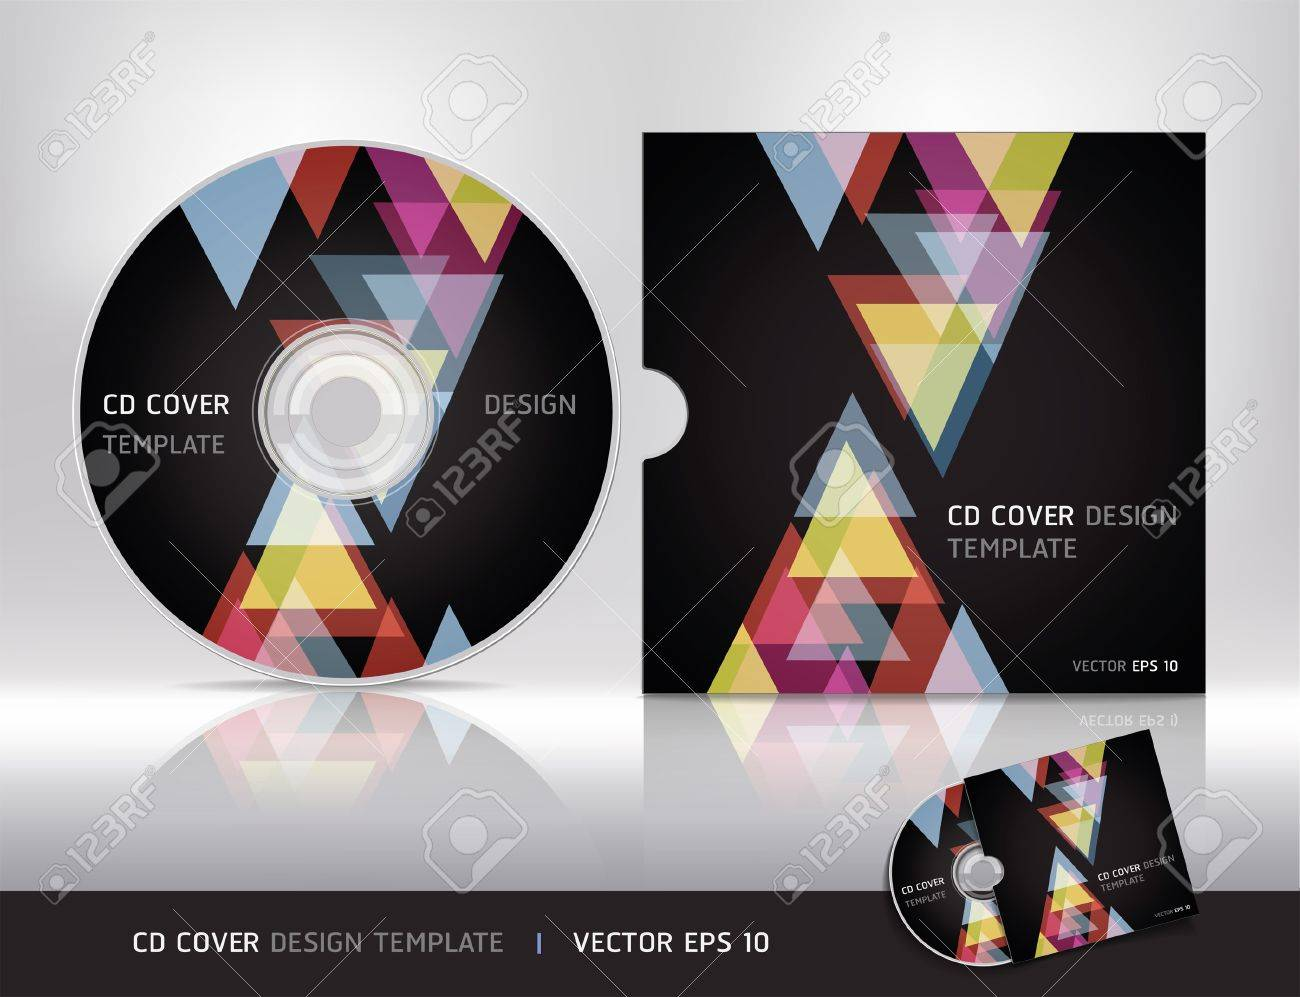 Cd box template download free vector art stock graphics amp images - Vector Cd Template Cd Cover Design Template Vector Illustration